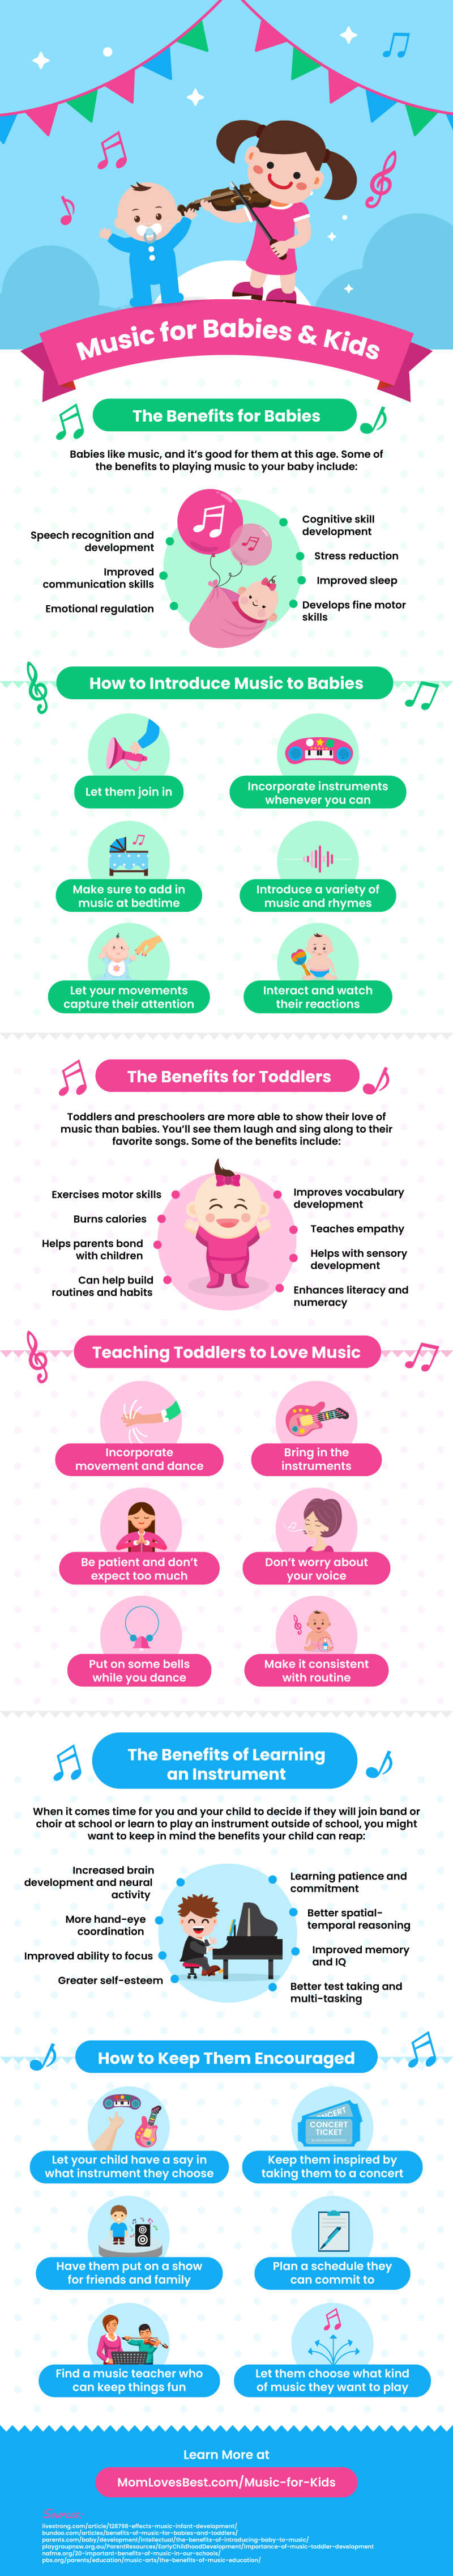 Infographic from Momlovesbest.com showing some benefits children get from playing an instrument